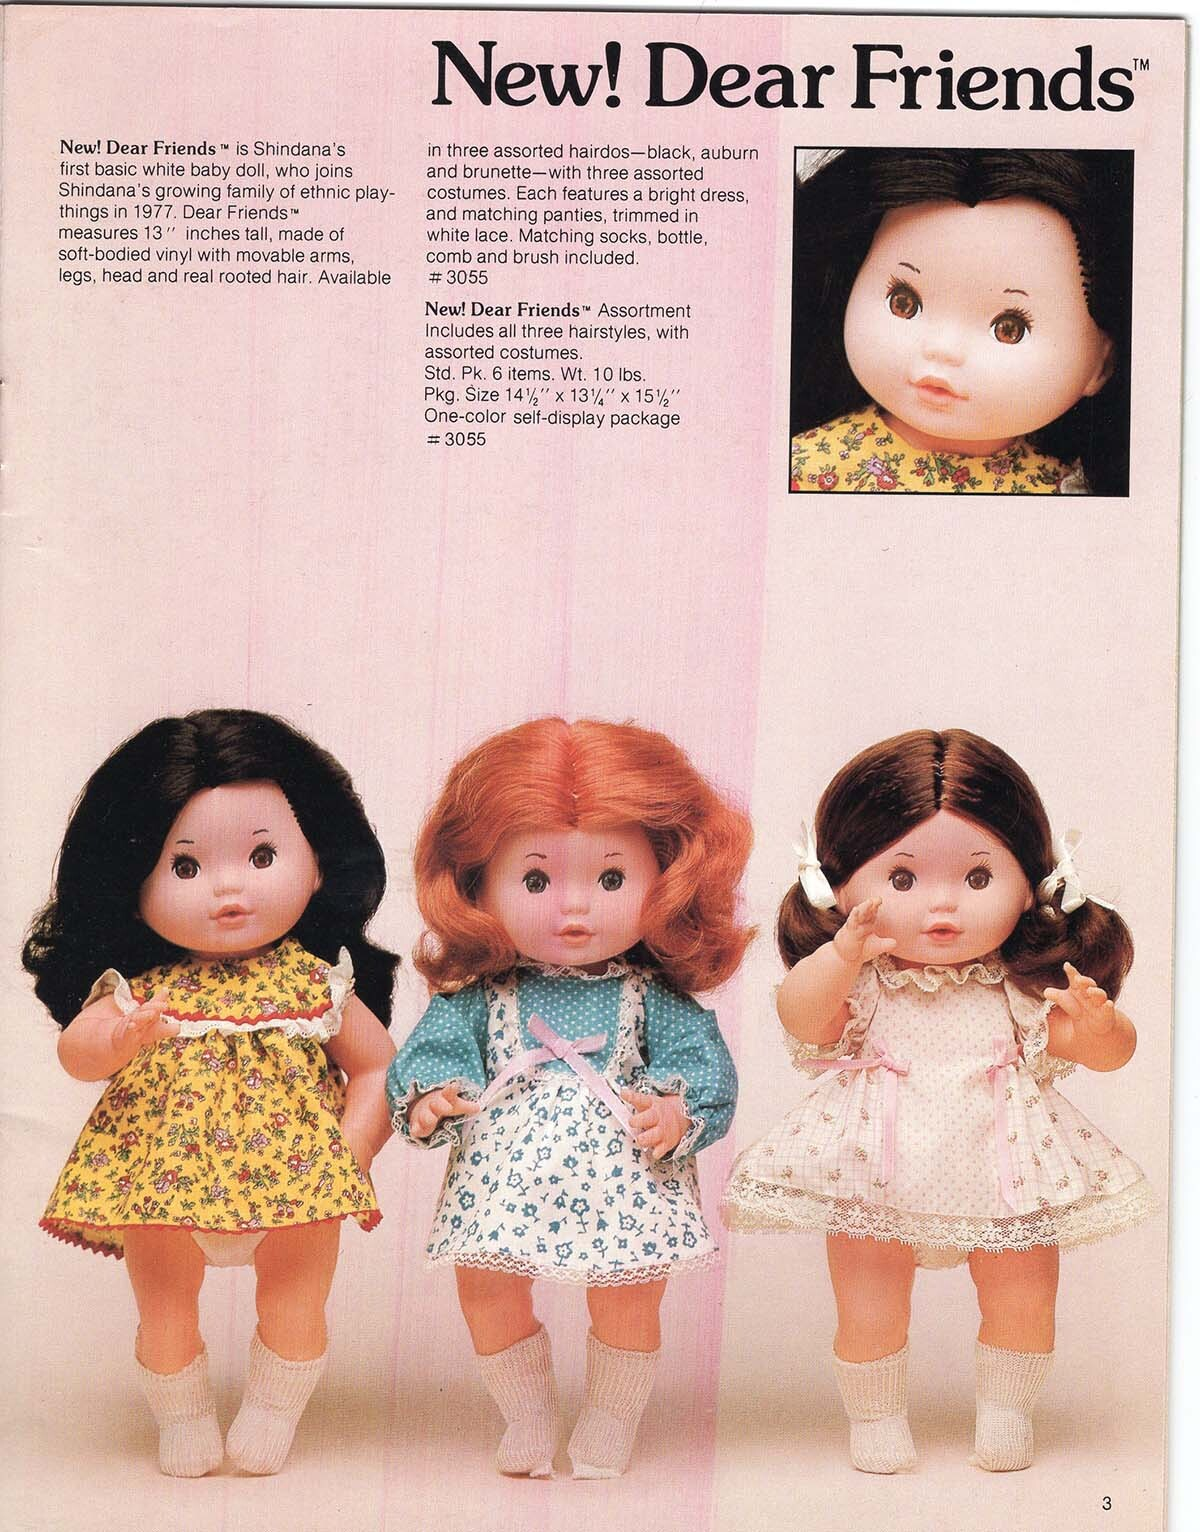 Dear Friends collection from Shindana Toys    Courtesy of Billie Green